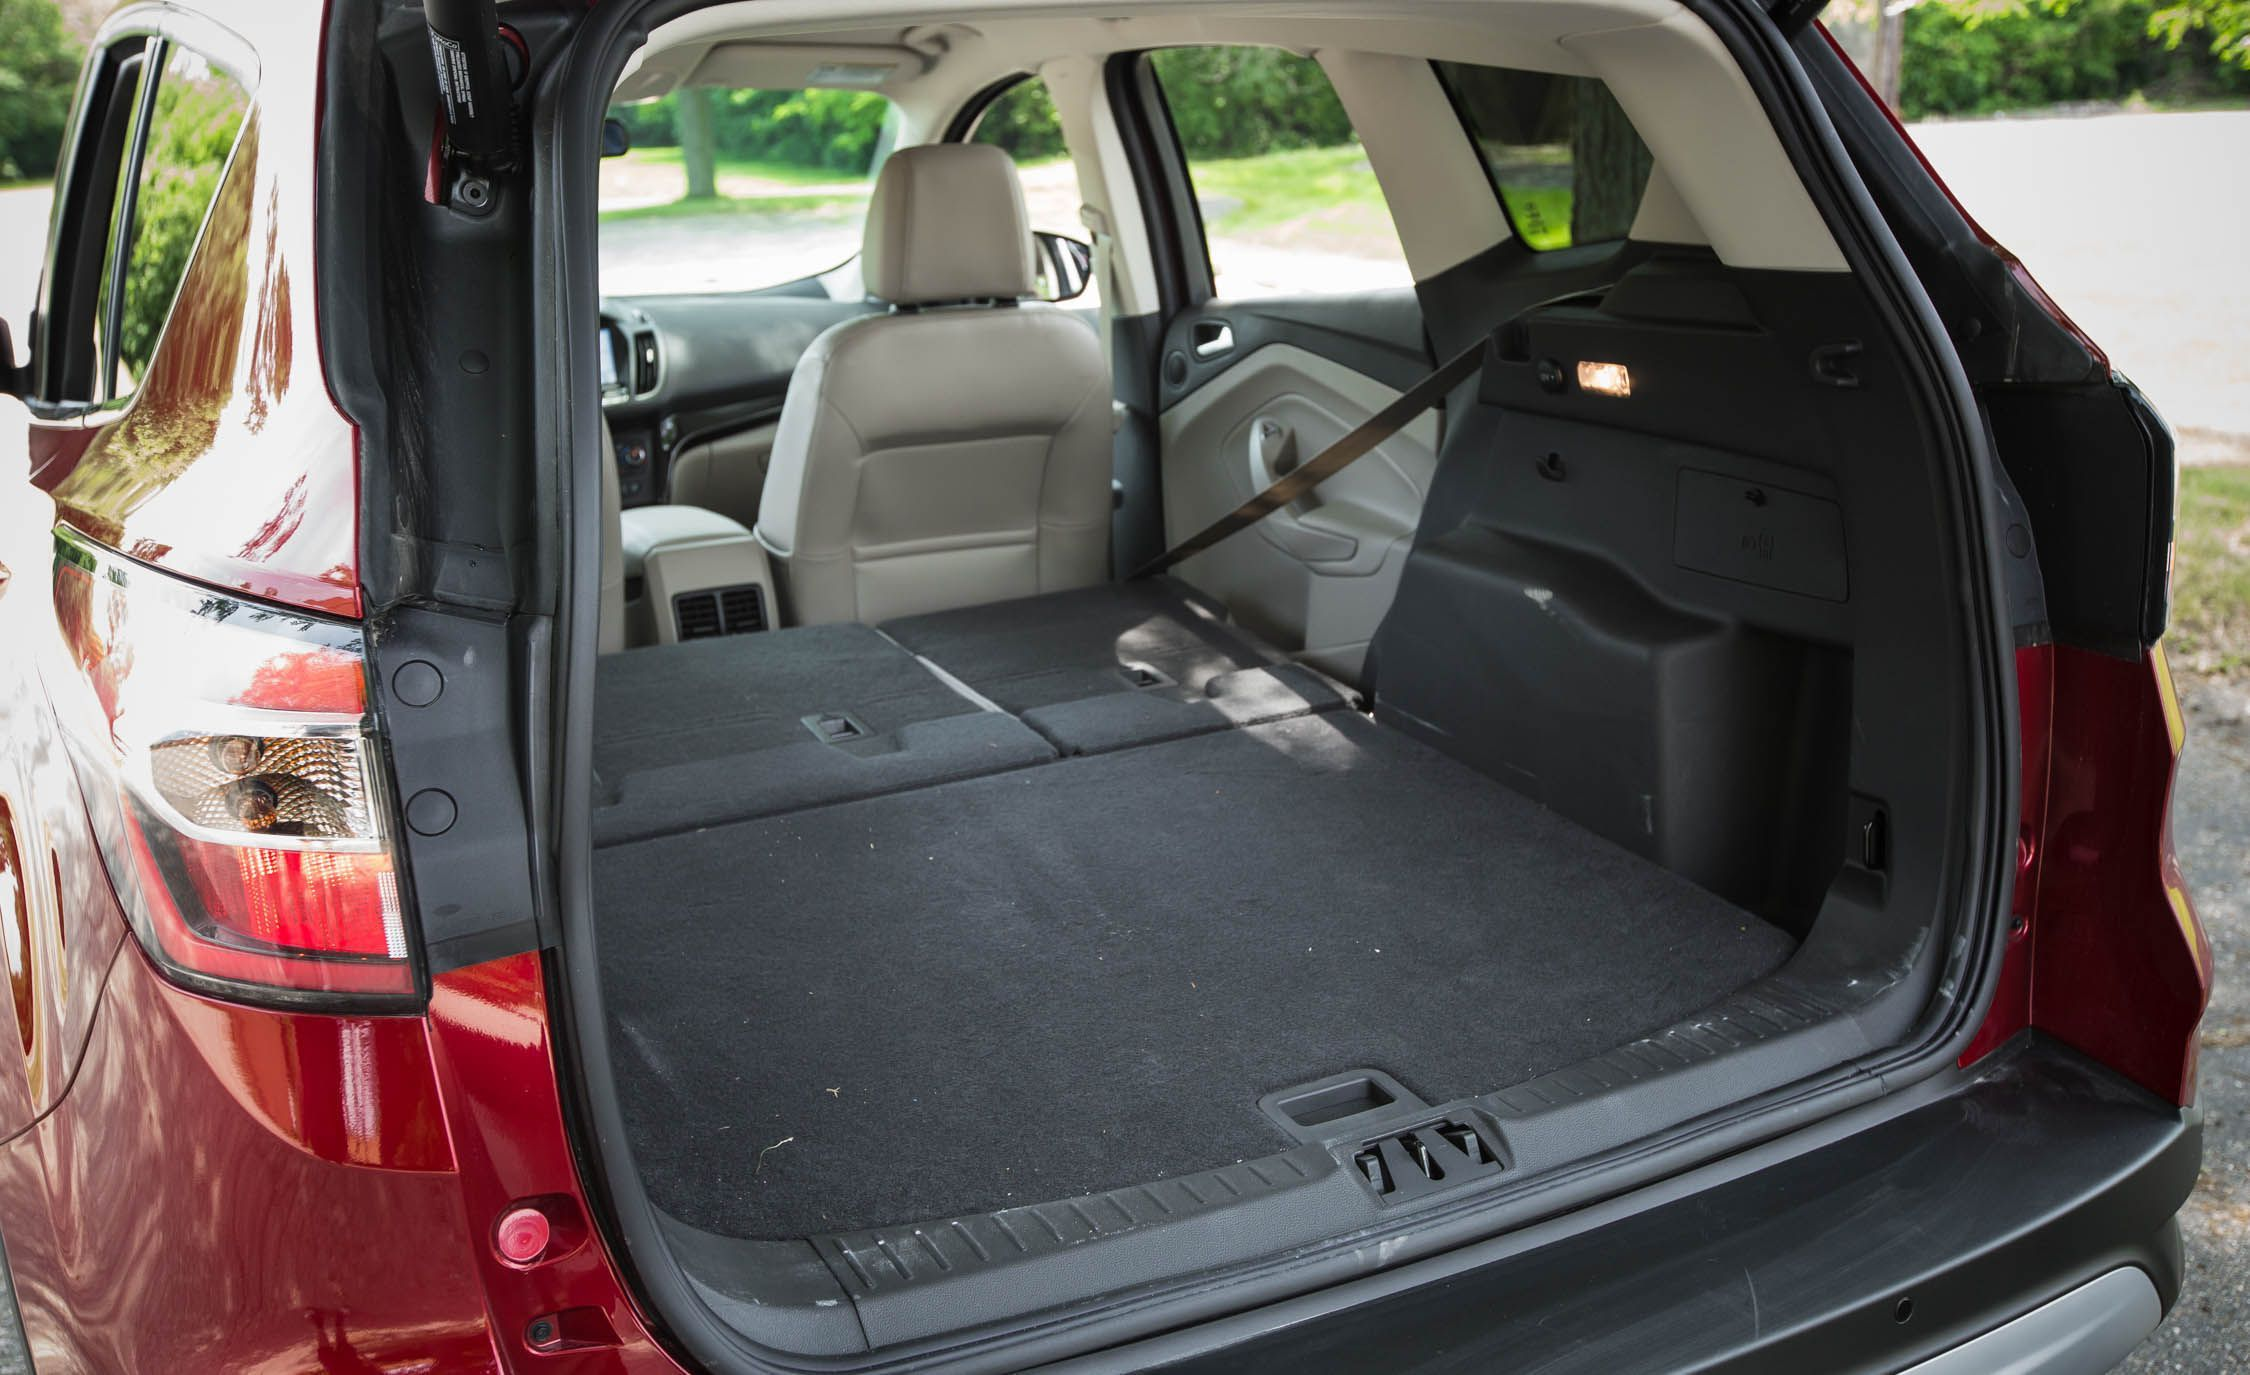 Ford Escape Cargo Space >> The Best Compact Suvs And Crossovers For Hauling Stuff